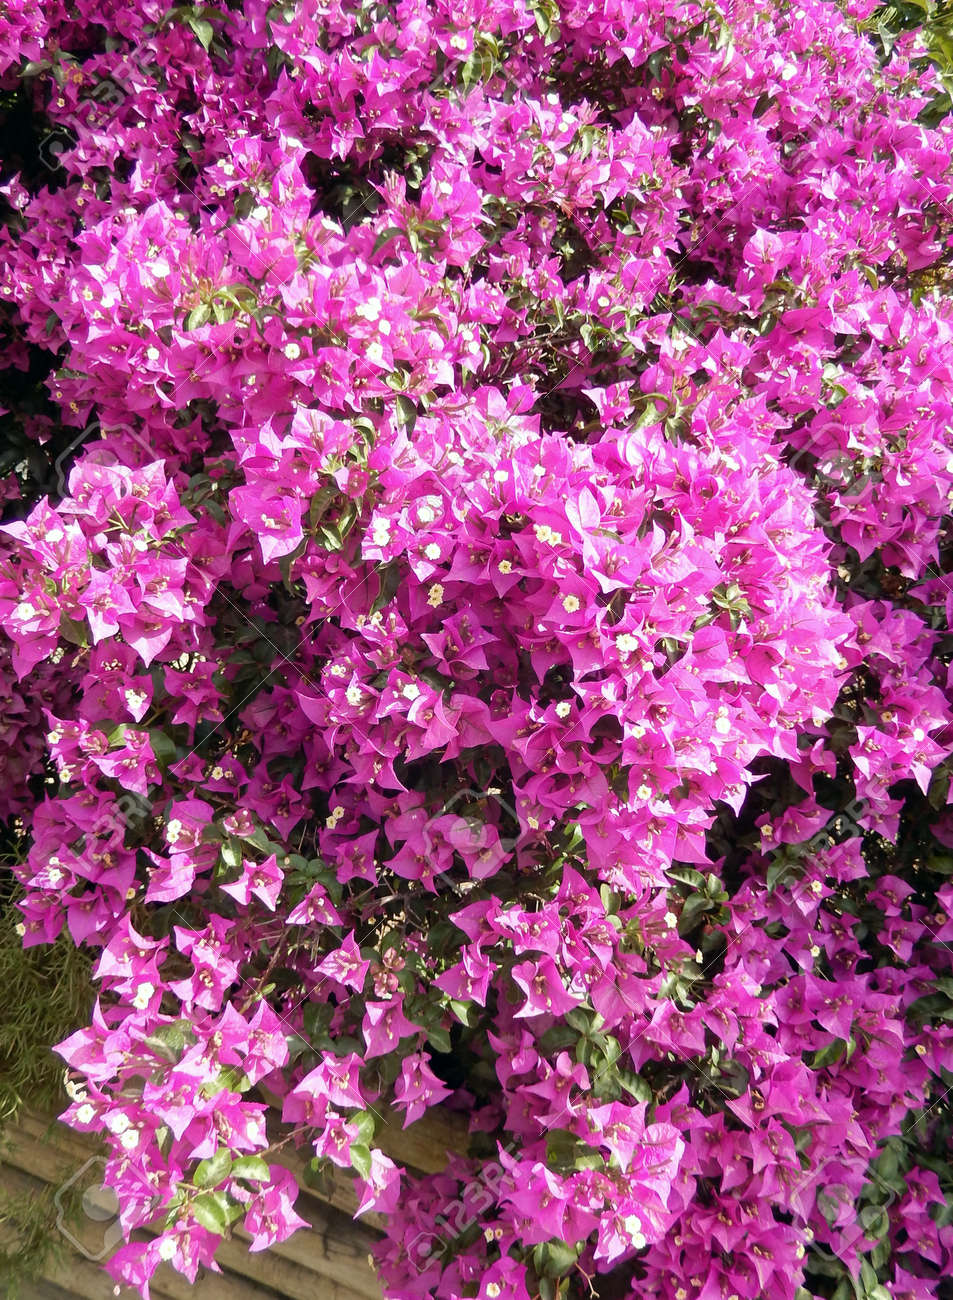 Bougainvillea Bush Background With Blooming Hot Pink Flowers Stock